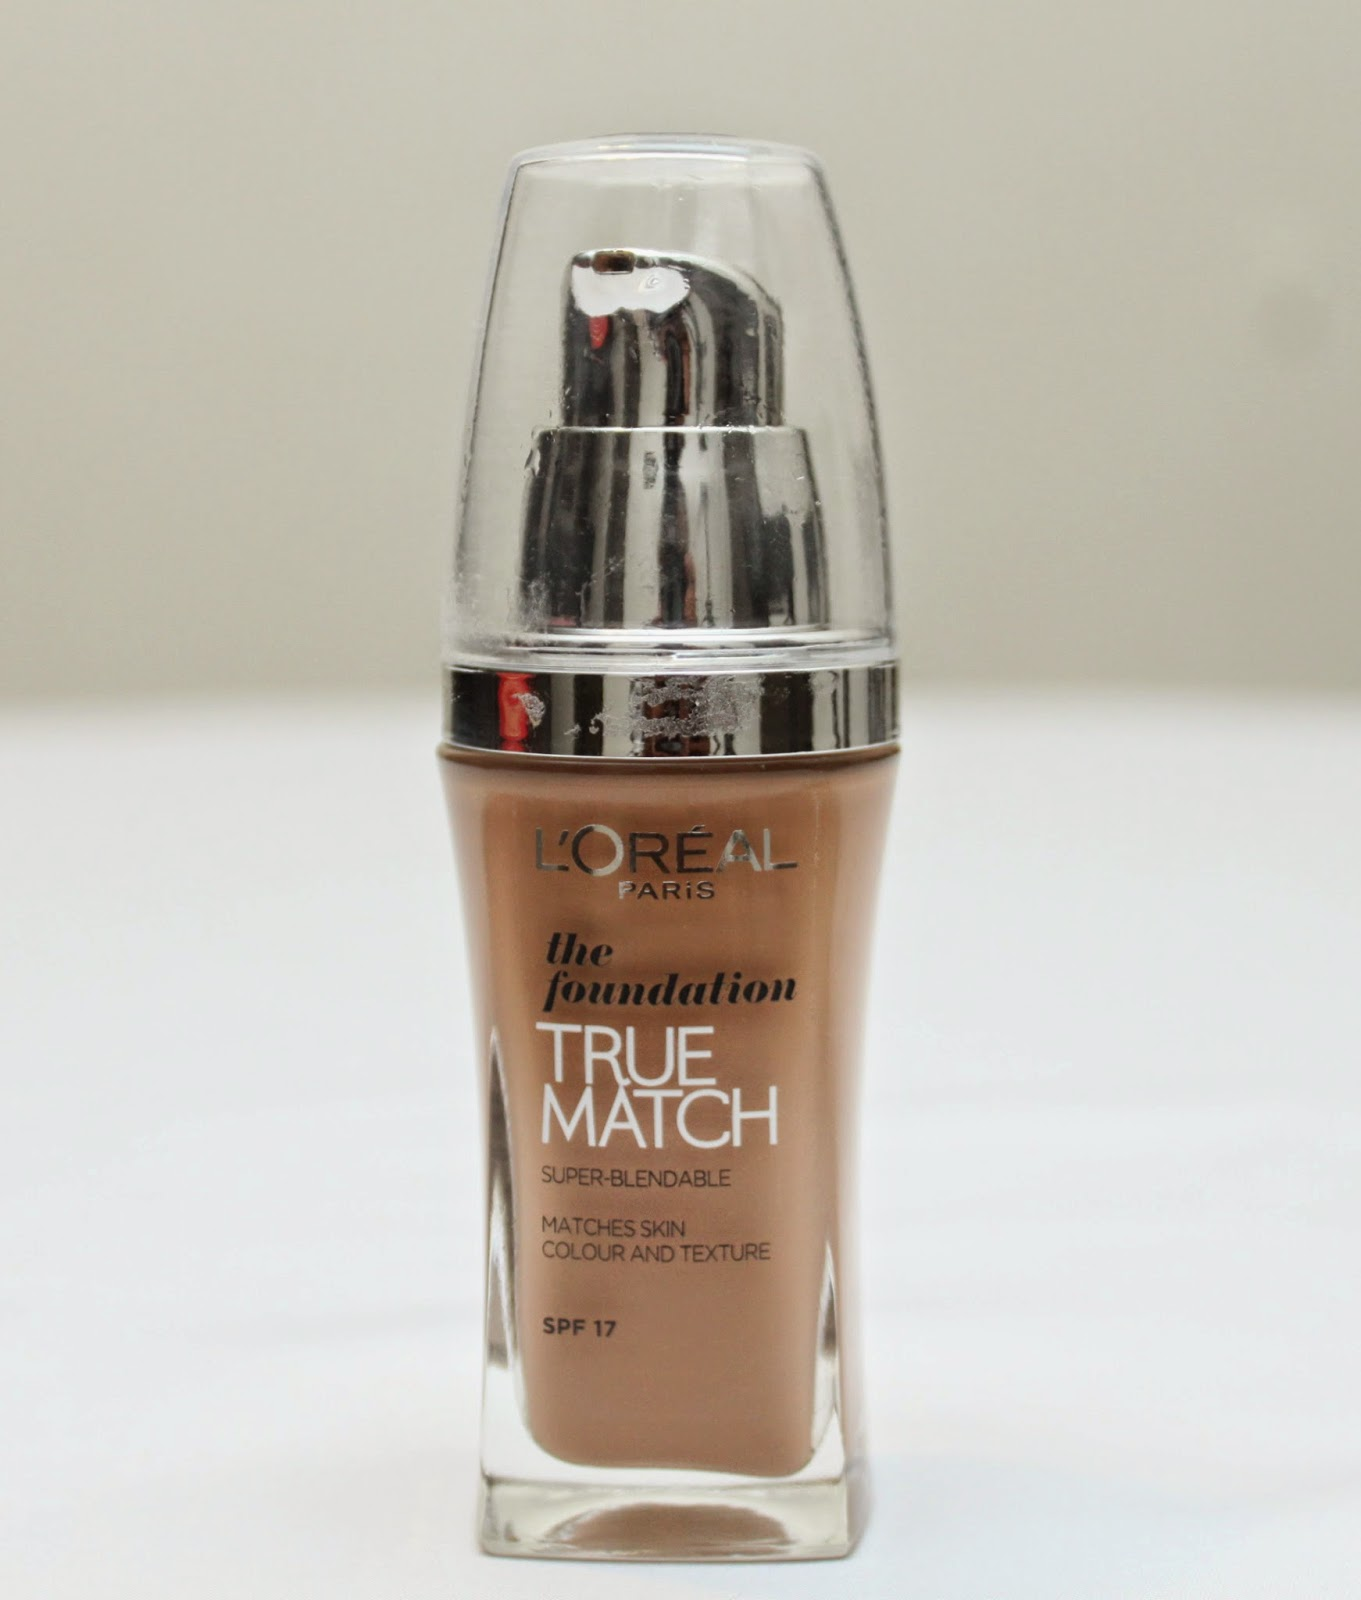 L'oreal True Match Foundtion in Cappuccino